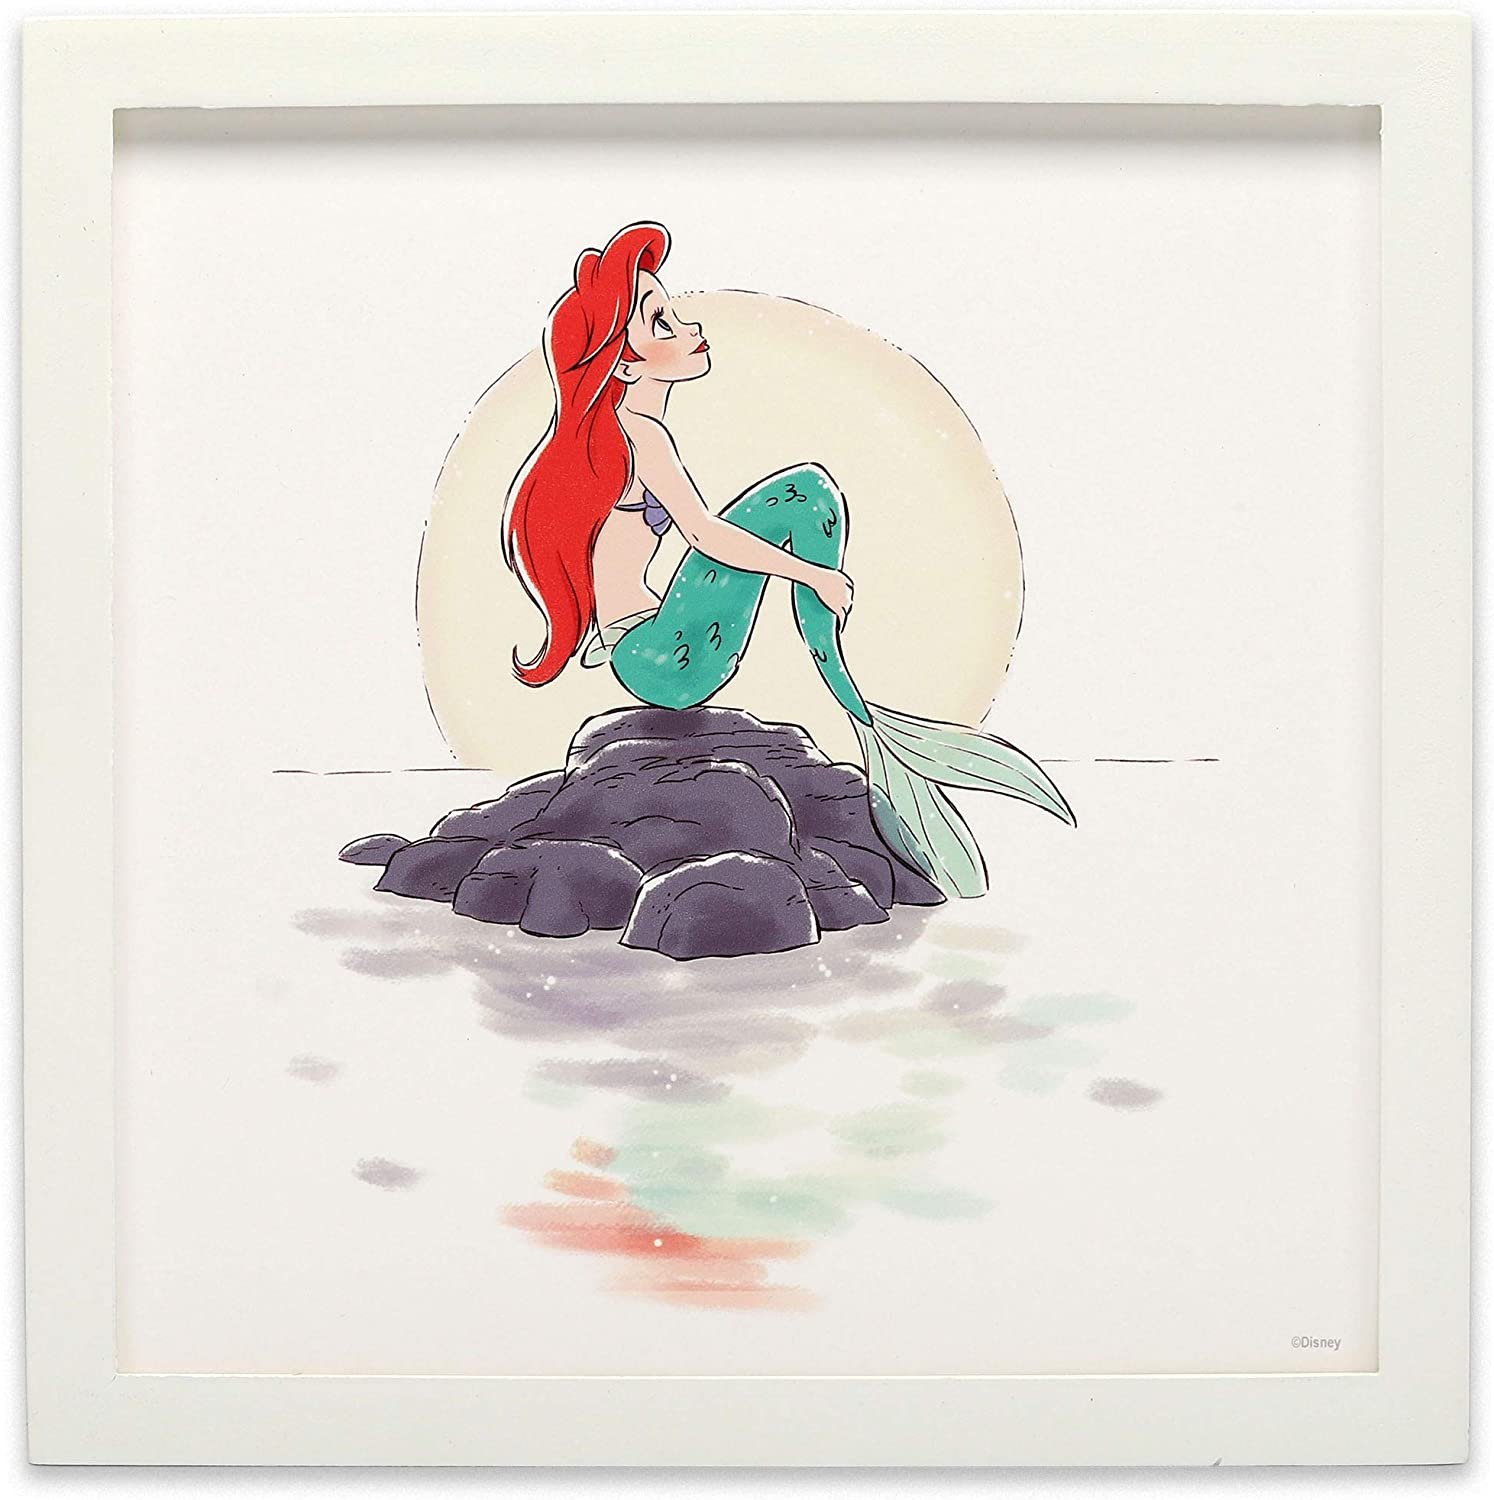 Open Road Brands Disney The Little Mermaid Ariel Framed Wood Wall Décor - for Bedroom, Play Room or Movie Room